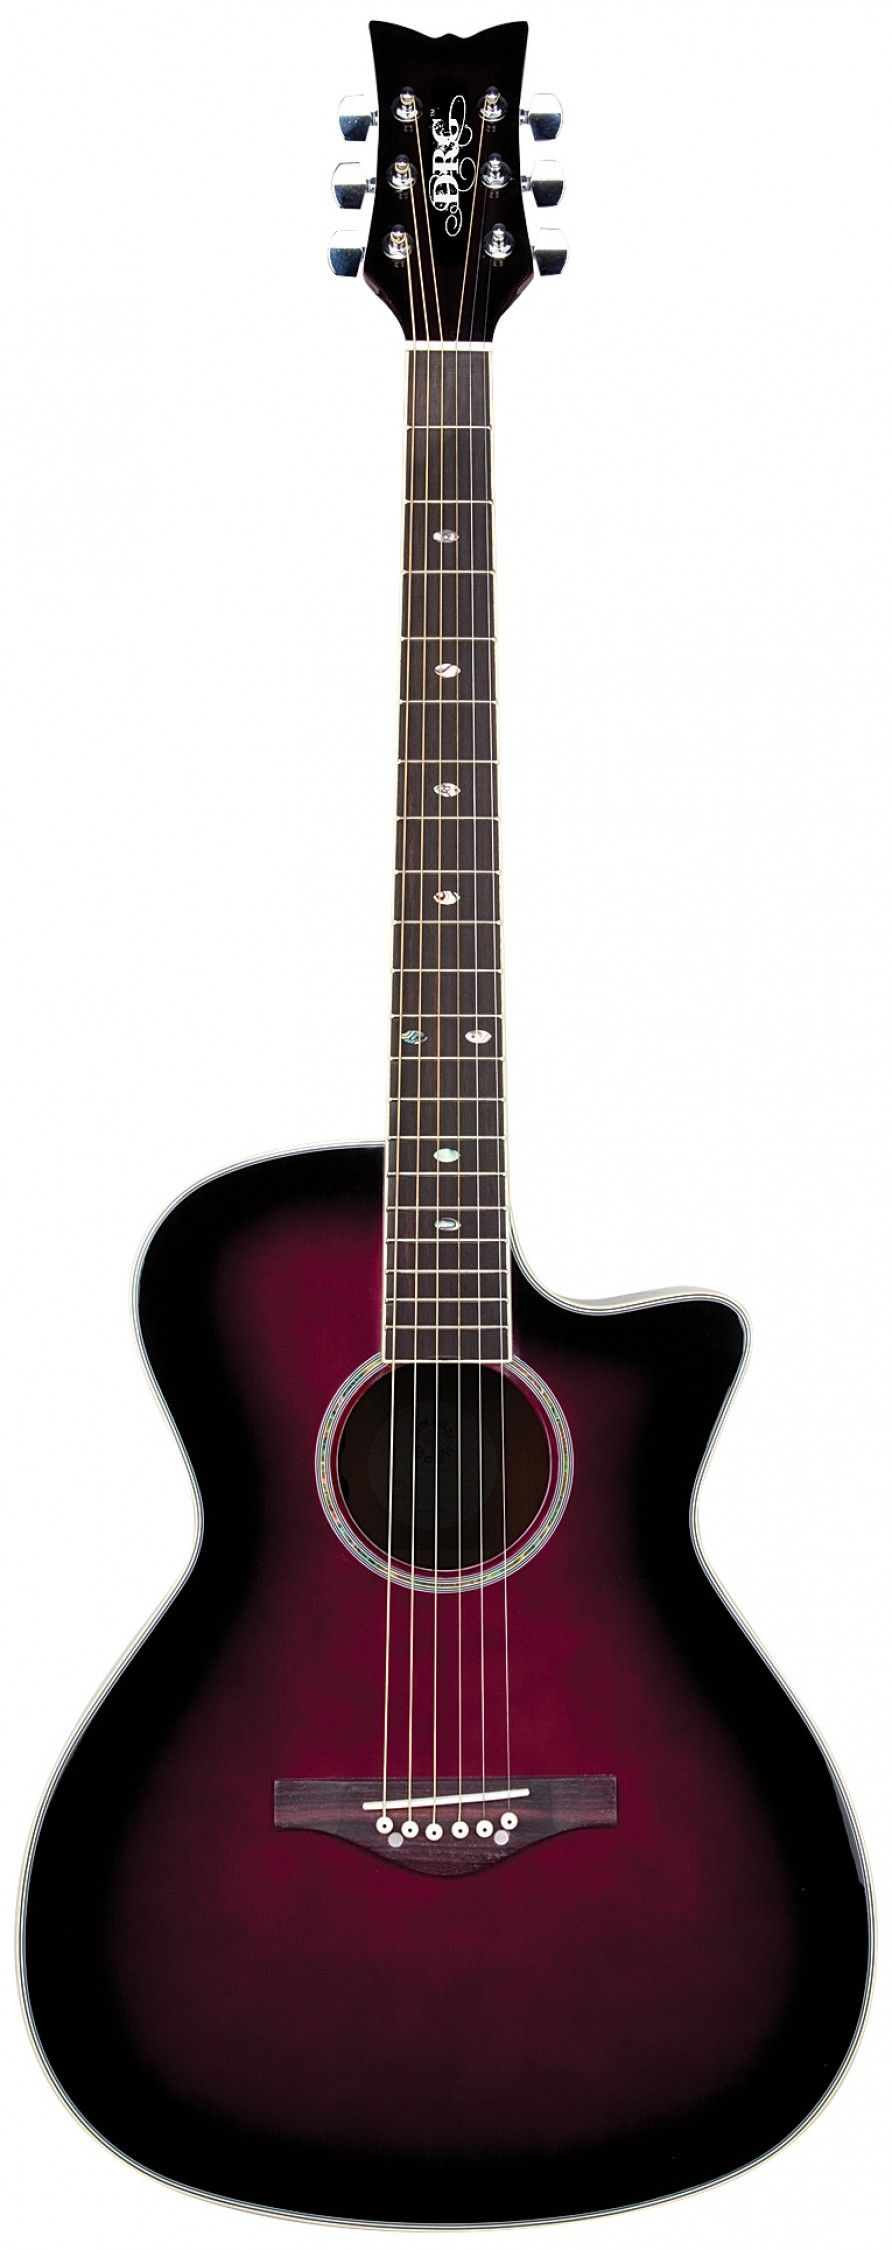 wildwood artist deluxe acoustic electric daisy rock guitars for girls and people with small. Black Bedroom Furniture Sets. Home Design Ideas